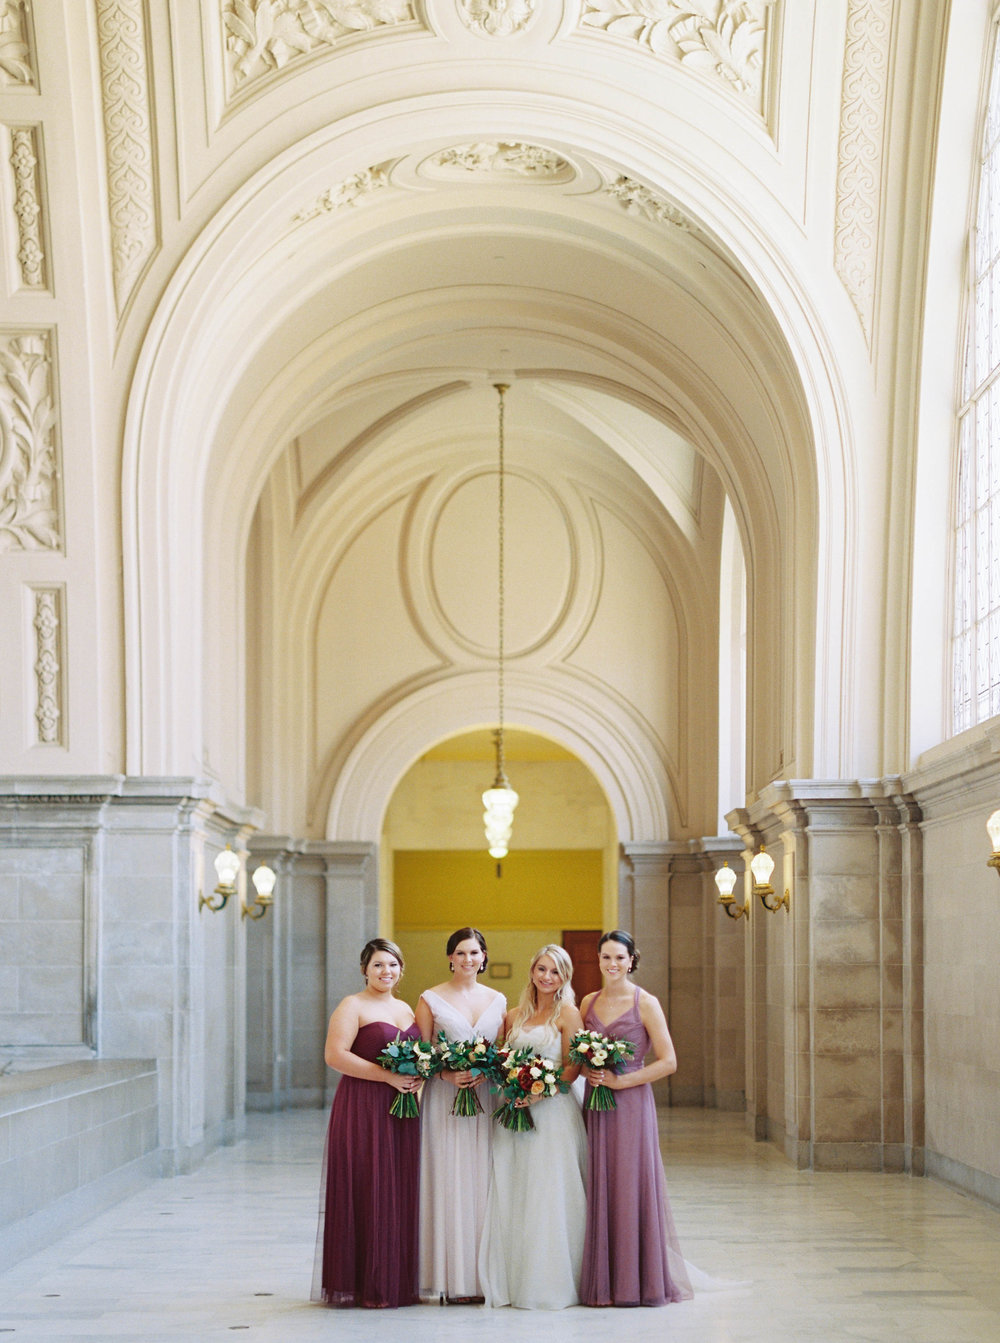 DennisRoyCoronel_Photography_SanFranciscoCityHall_Wedding-23.jpg